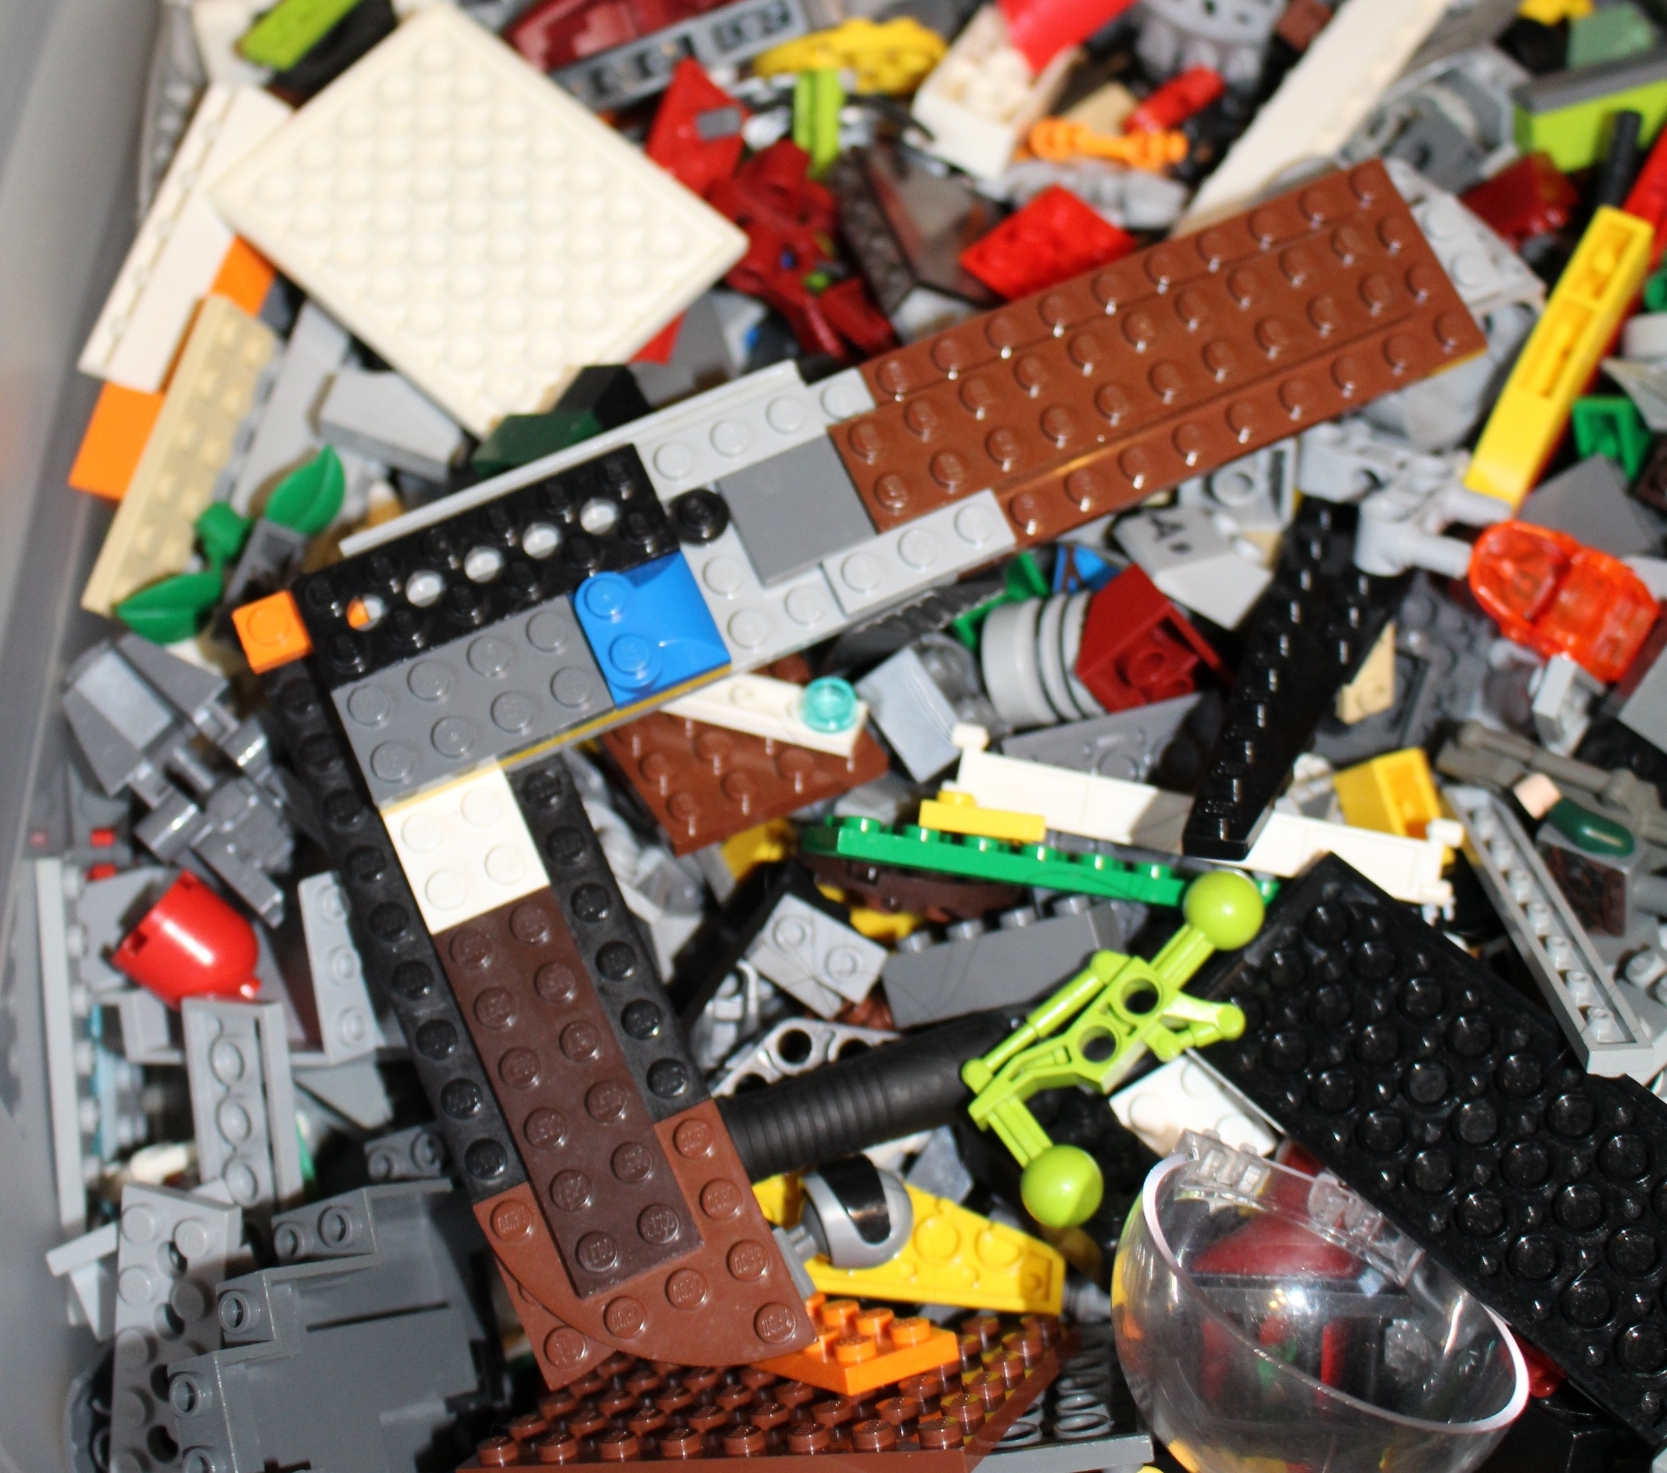 You'll have to take this gun from our cold dead hands...more Lego Security